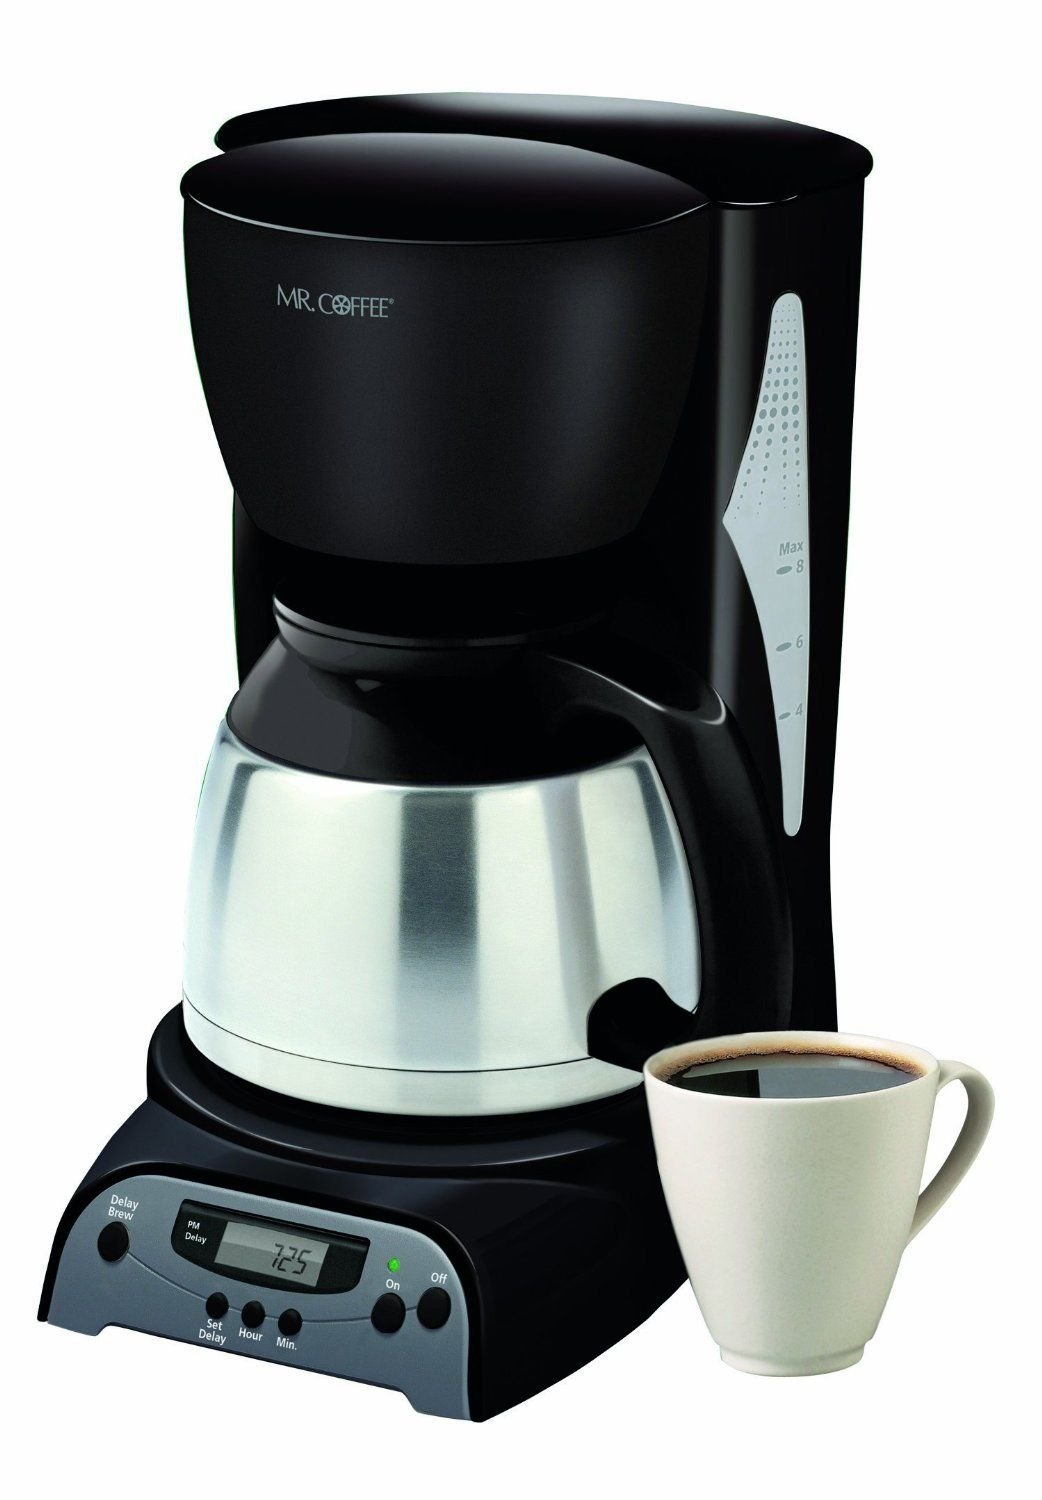 Thermal Coffee Maker Mr Coffee : MR COFFEE 8 CUP THERMAL COFFEE MAKER